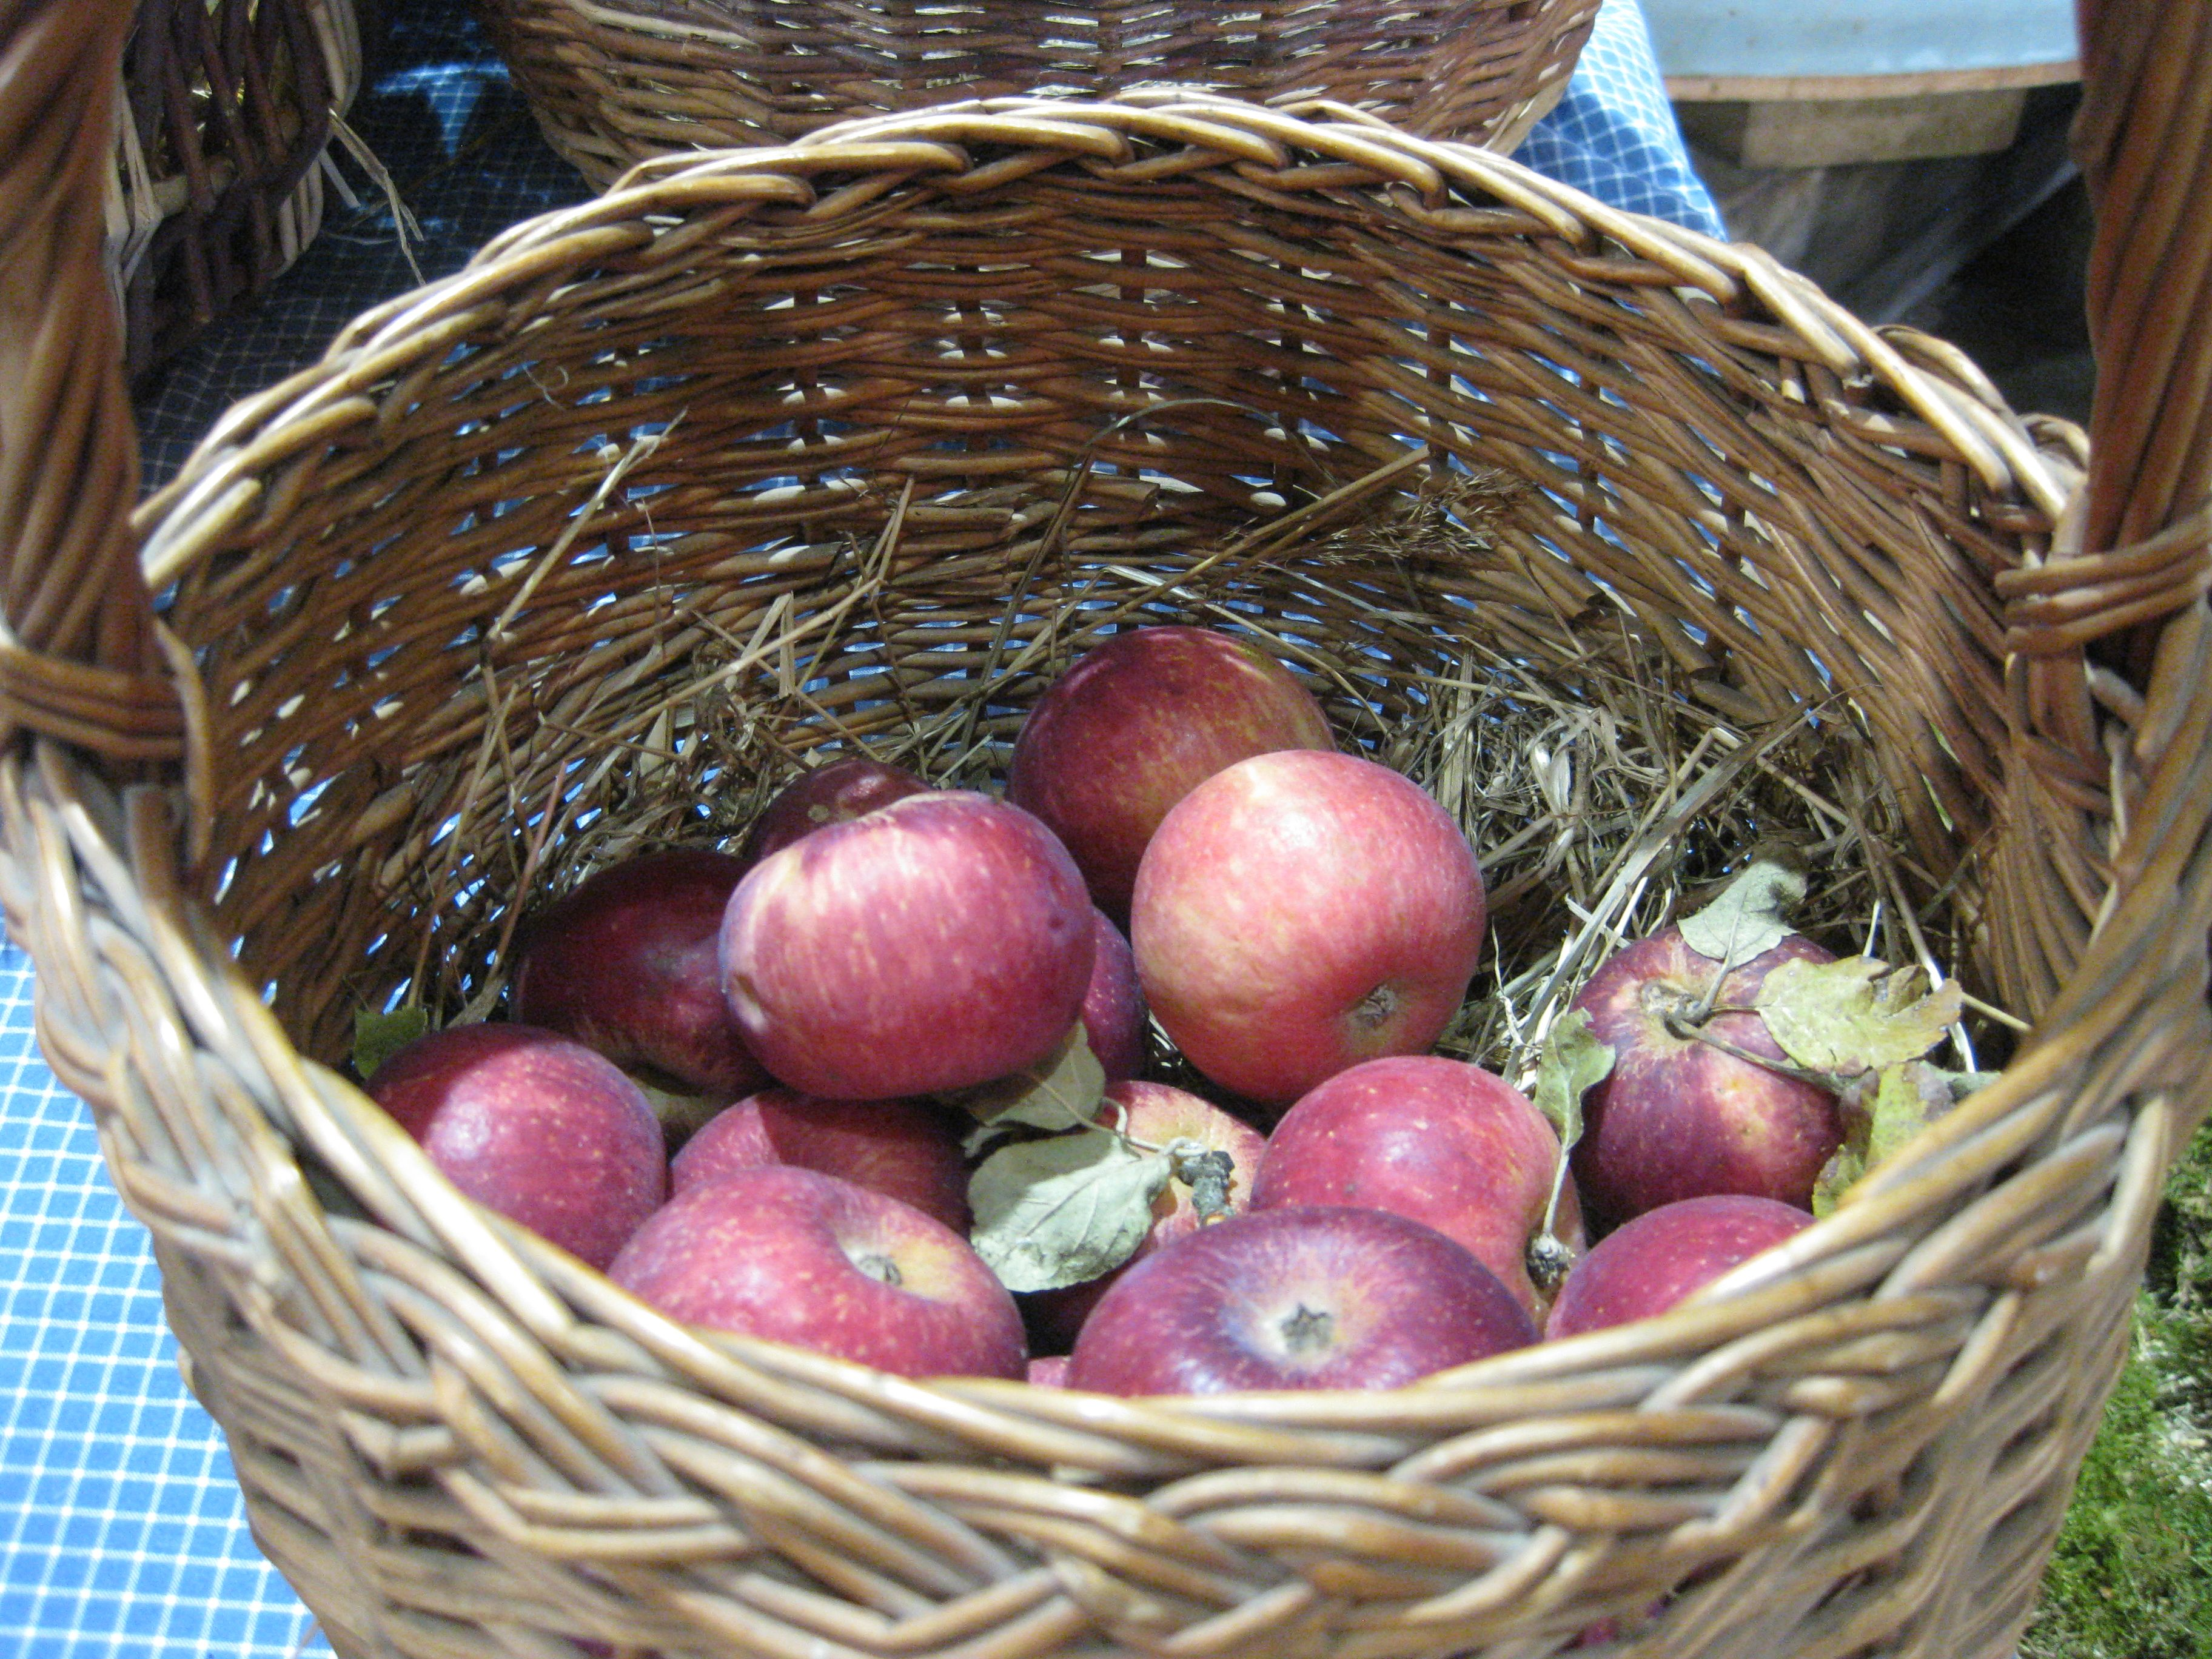 Organic crab apples in a basket